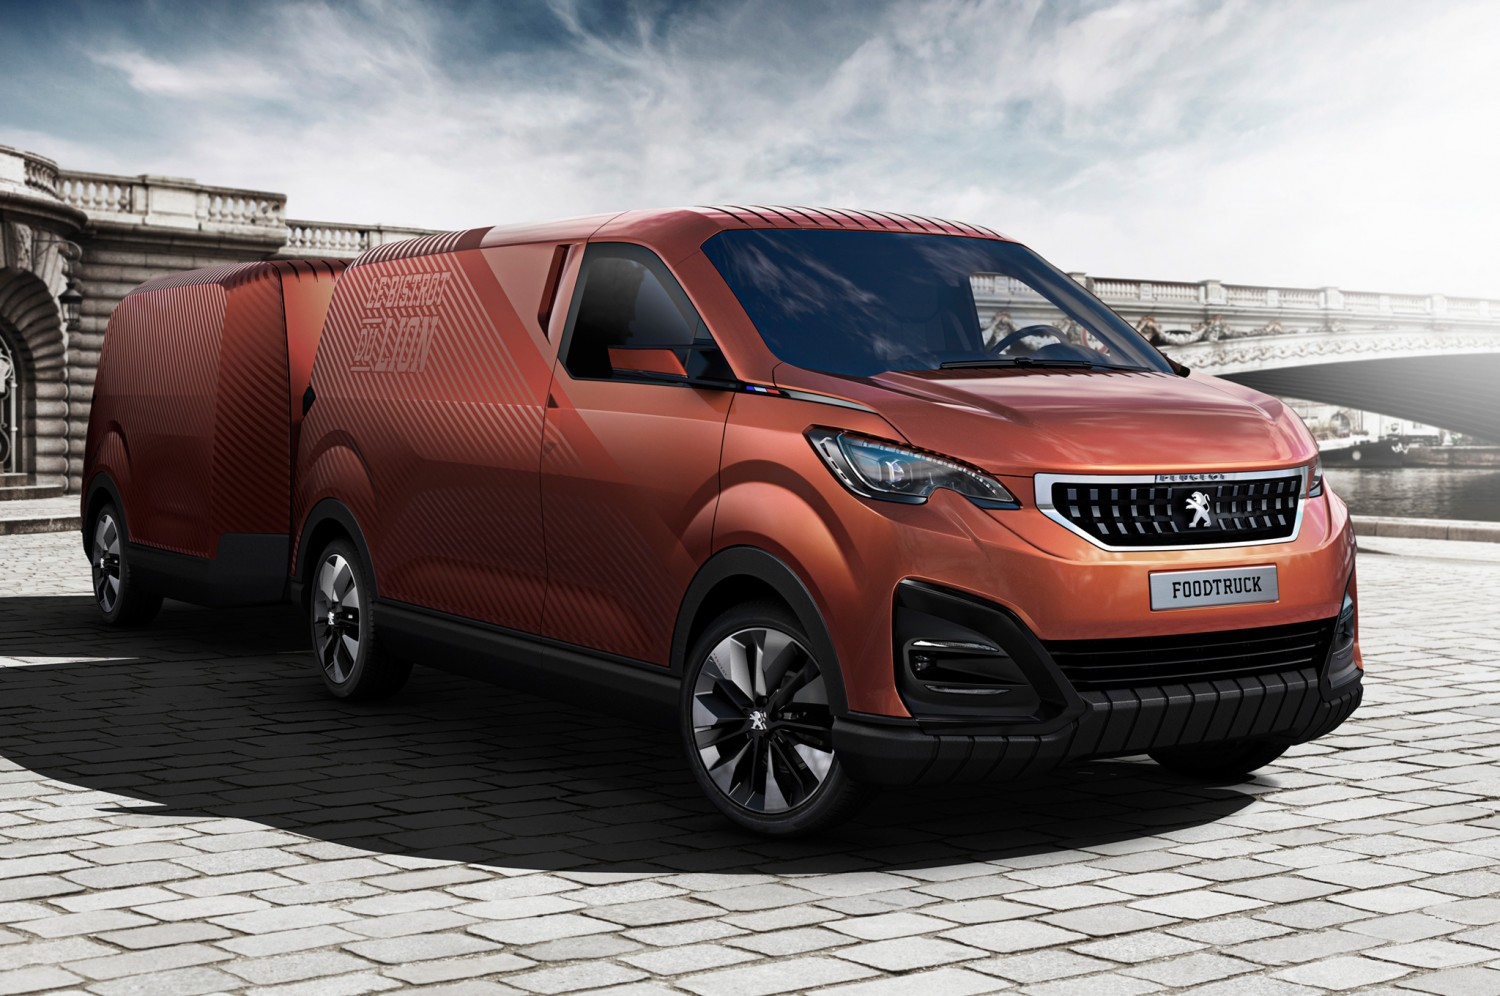 peugeot-food-truck-concept-front-three-quarter